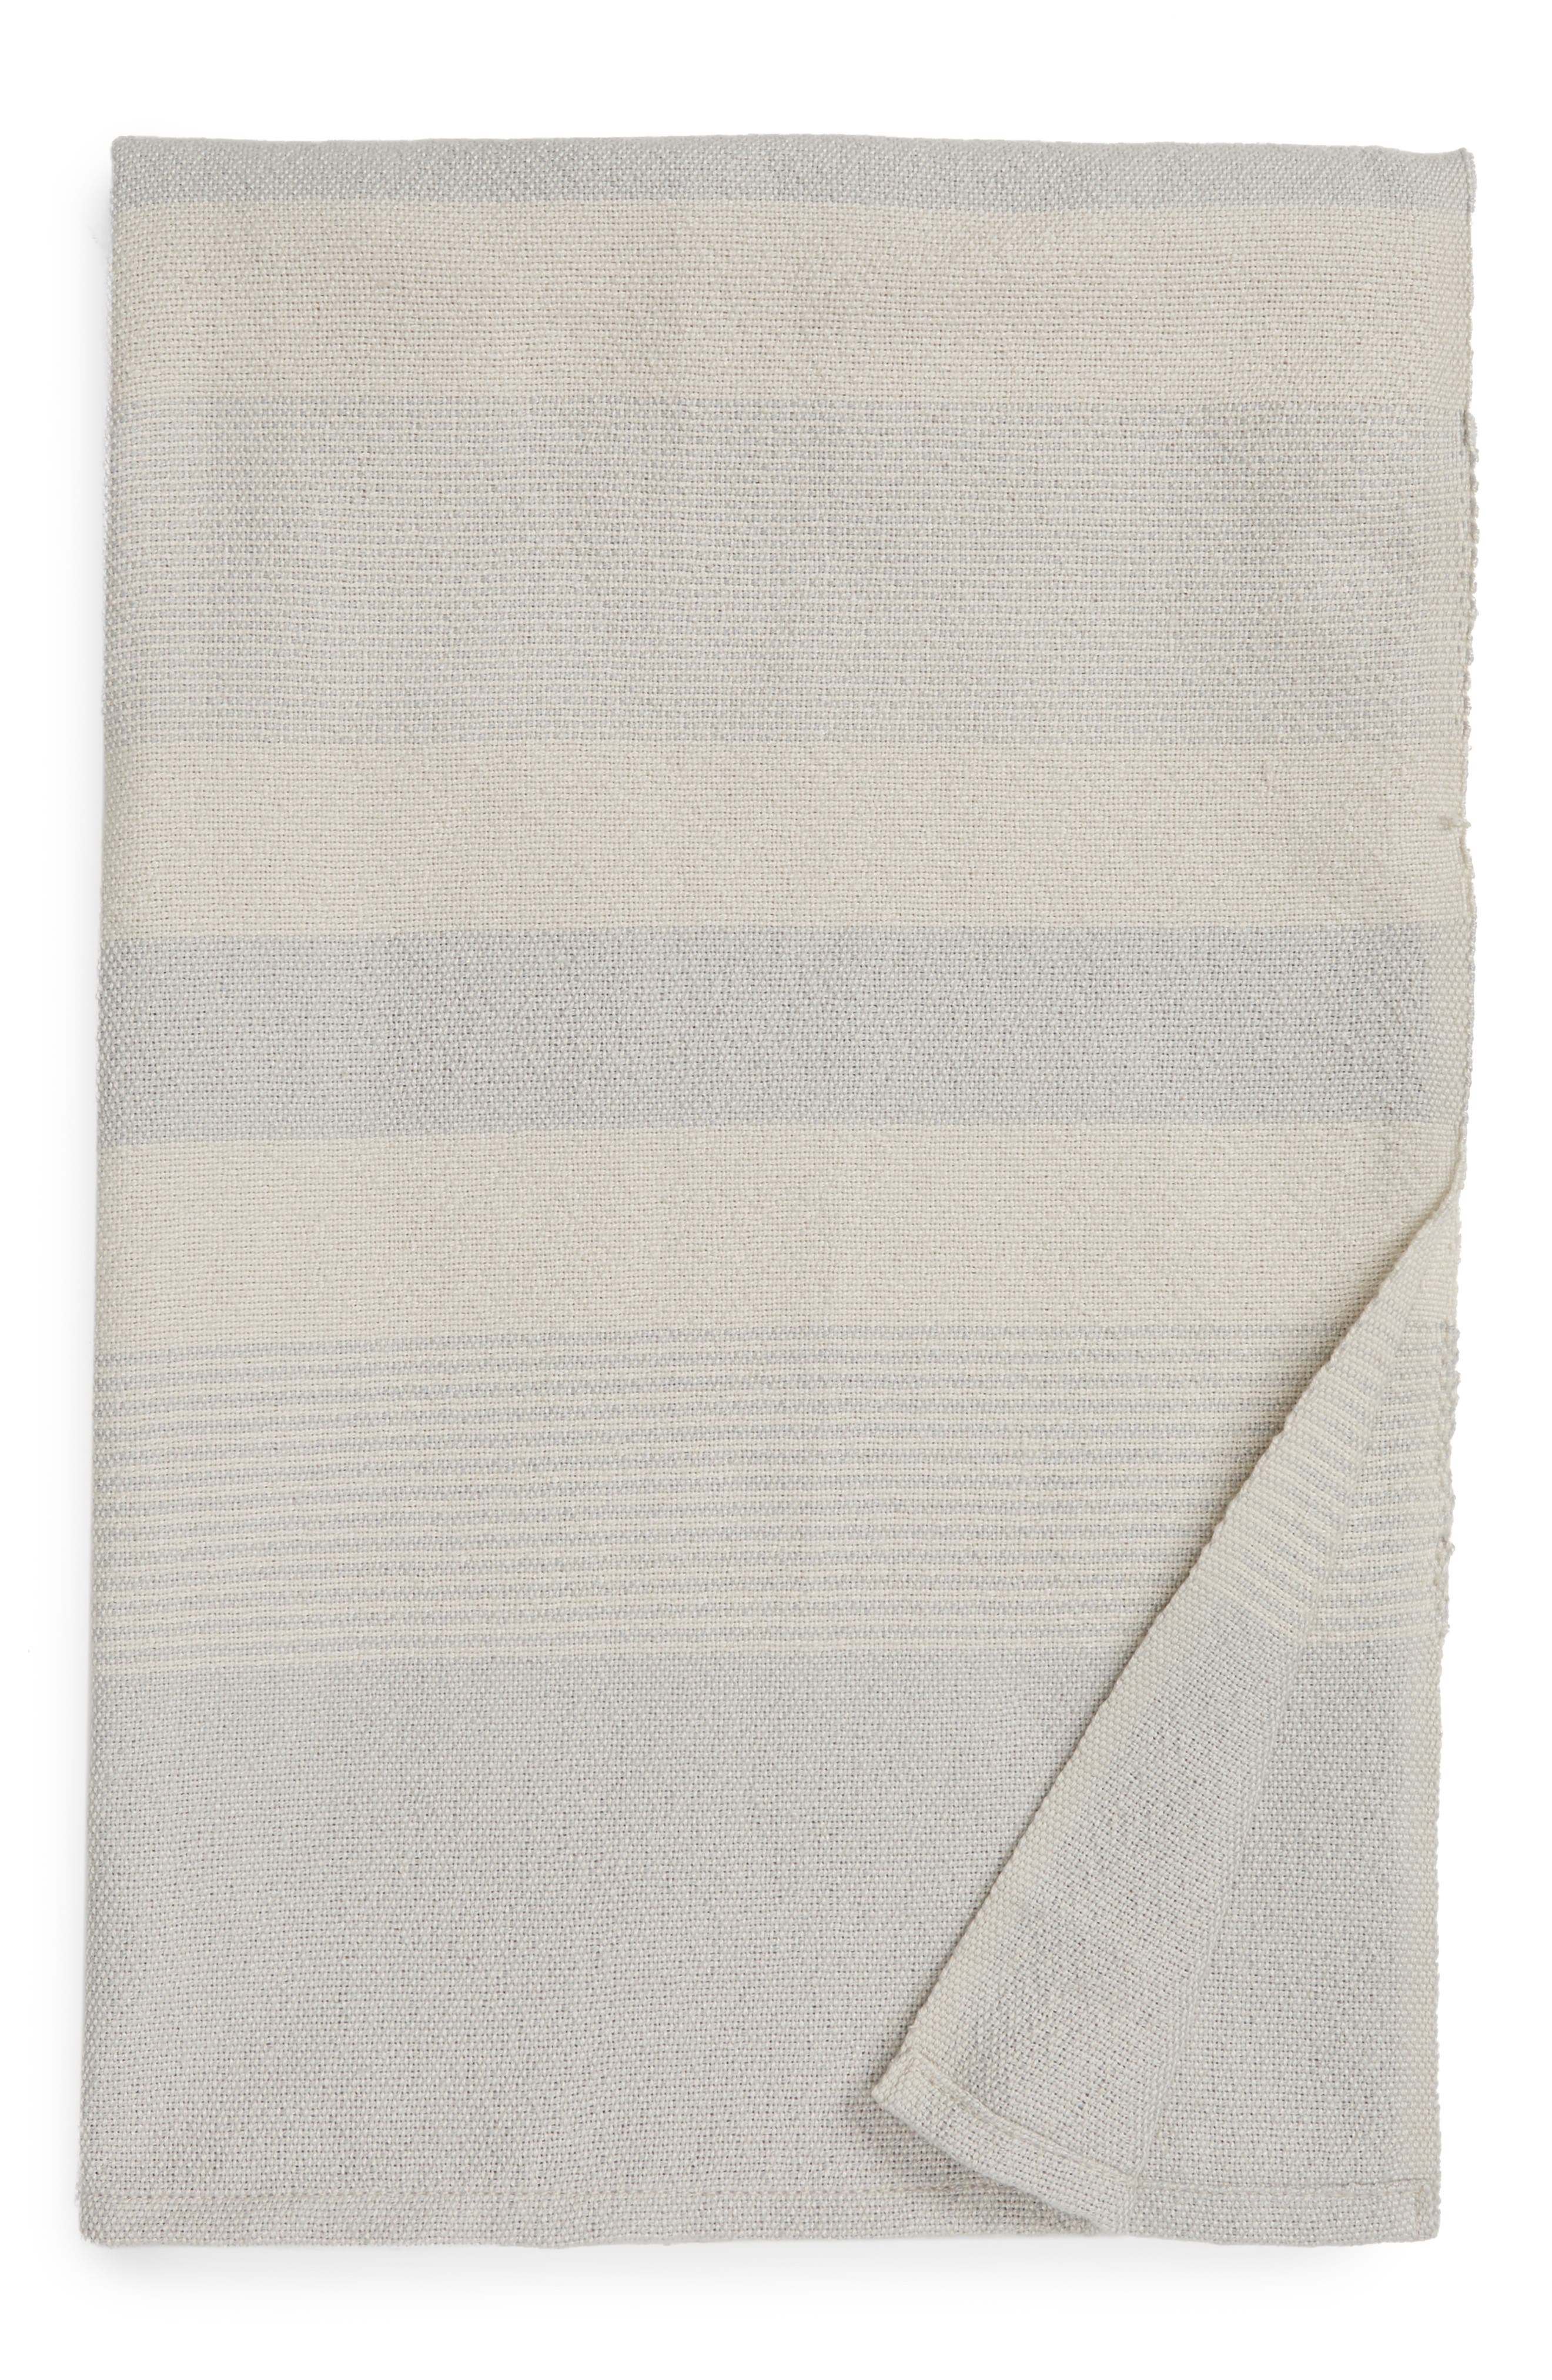 Modern warmth defines this softly striped melange blanket that\\\'s ideal for cuddling up on the couch after a long day. Style Name: Nordstrom Melange Stripe Throw Blanket. Style Number: 5957967. Available in stores.